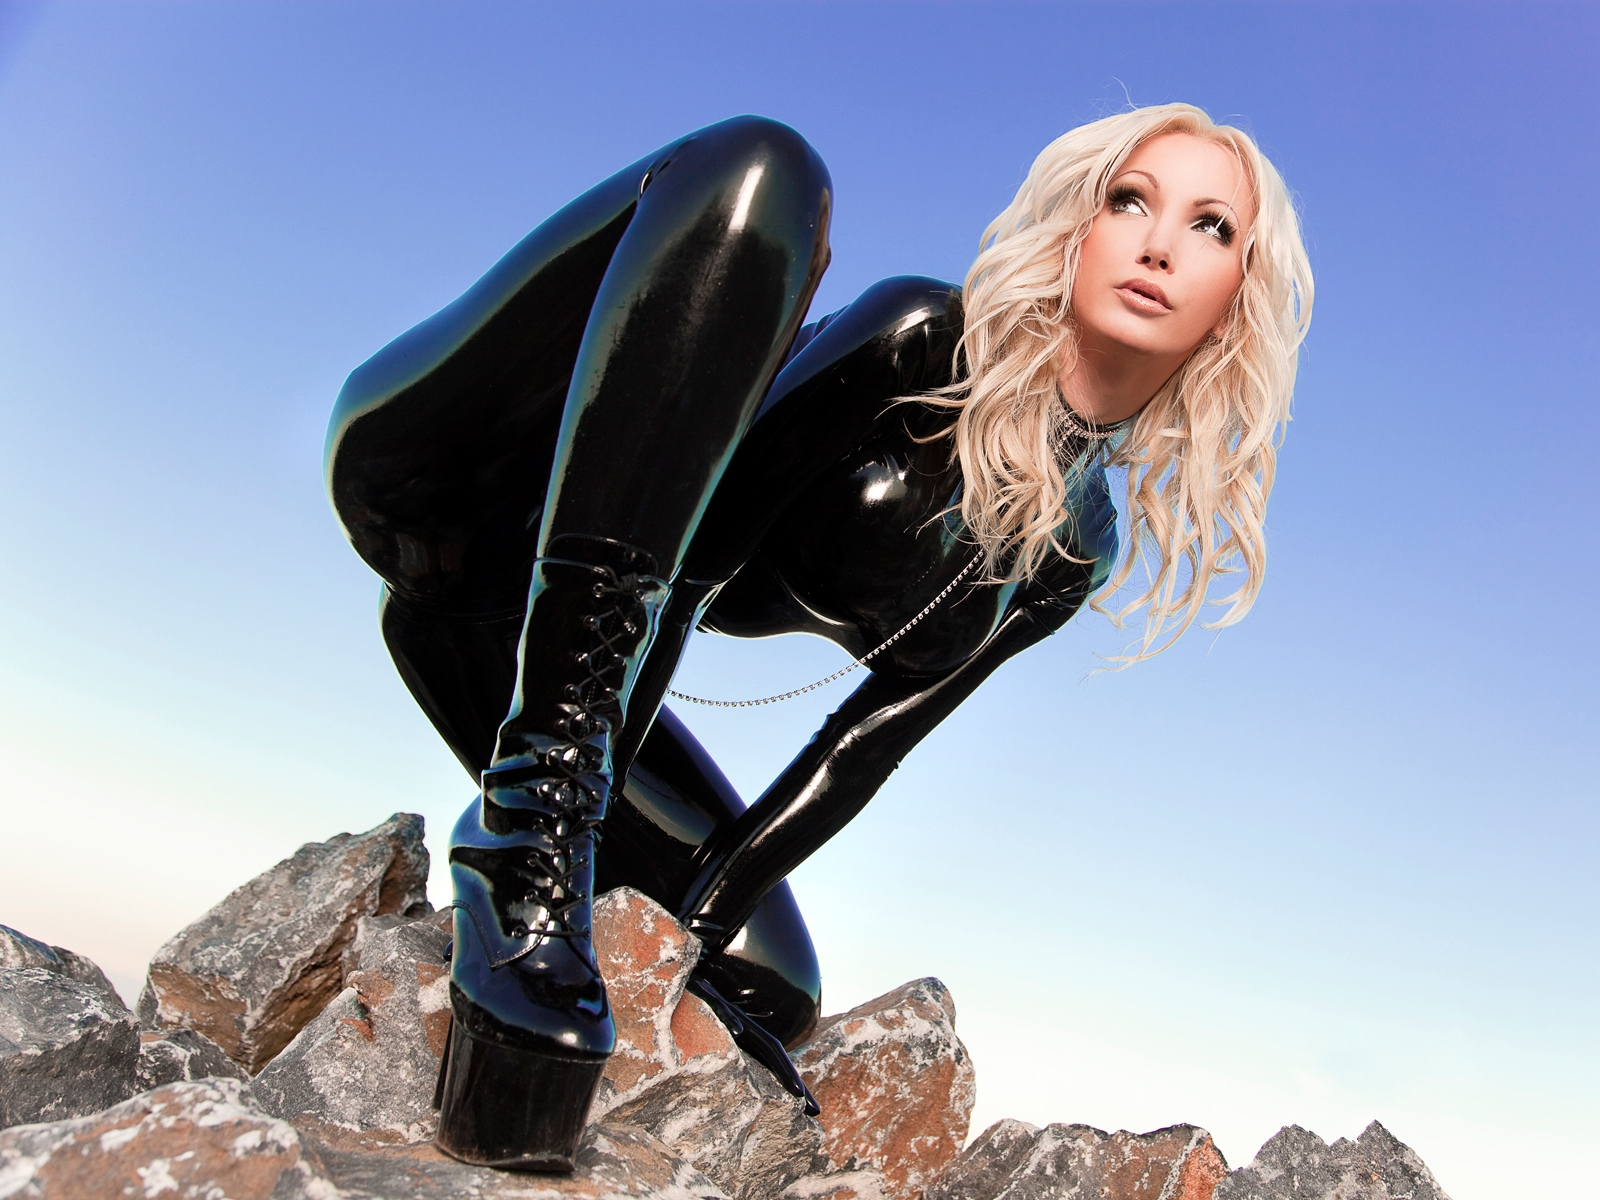 Black,shiny Body Suit Complete With Boots